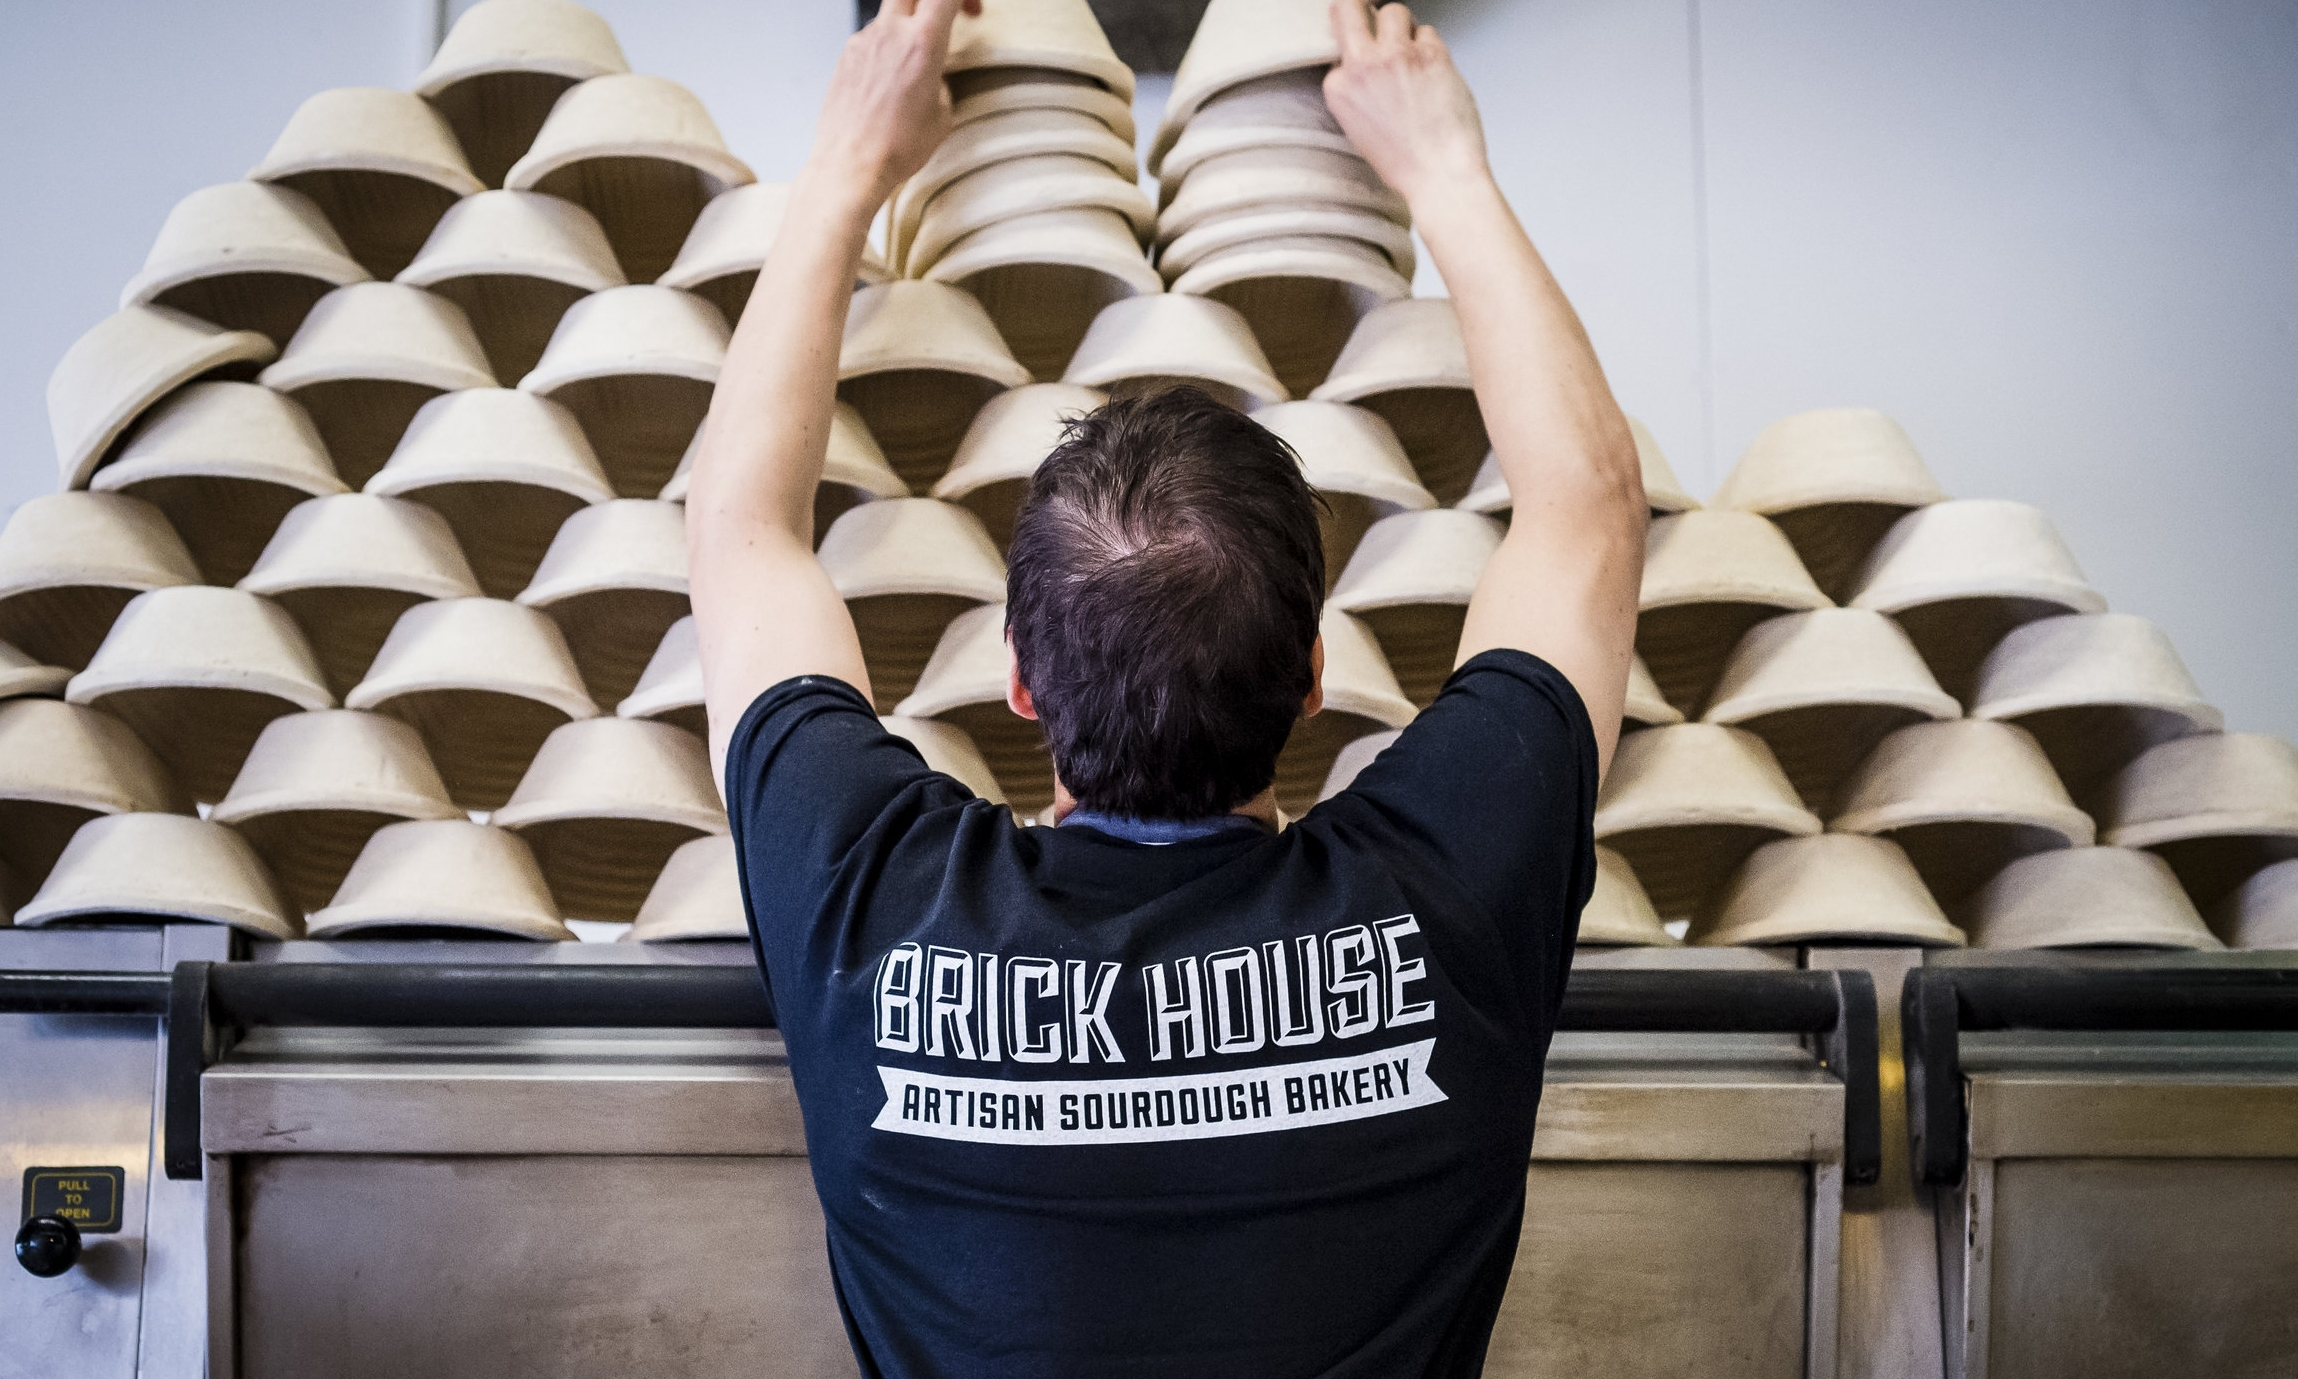 Brick House Baker